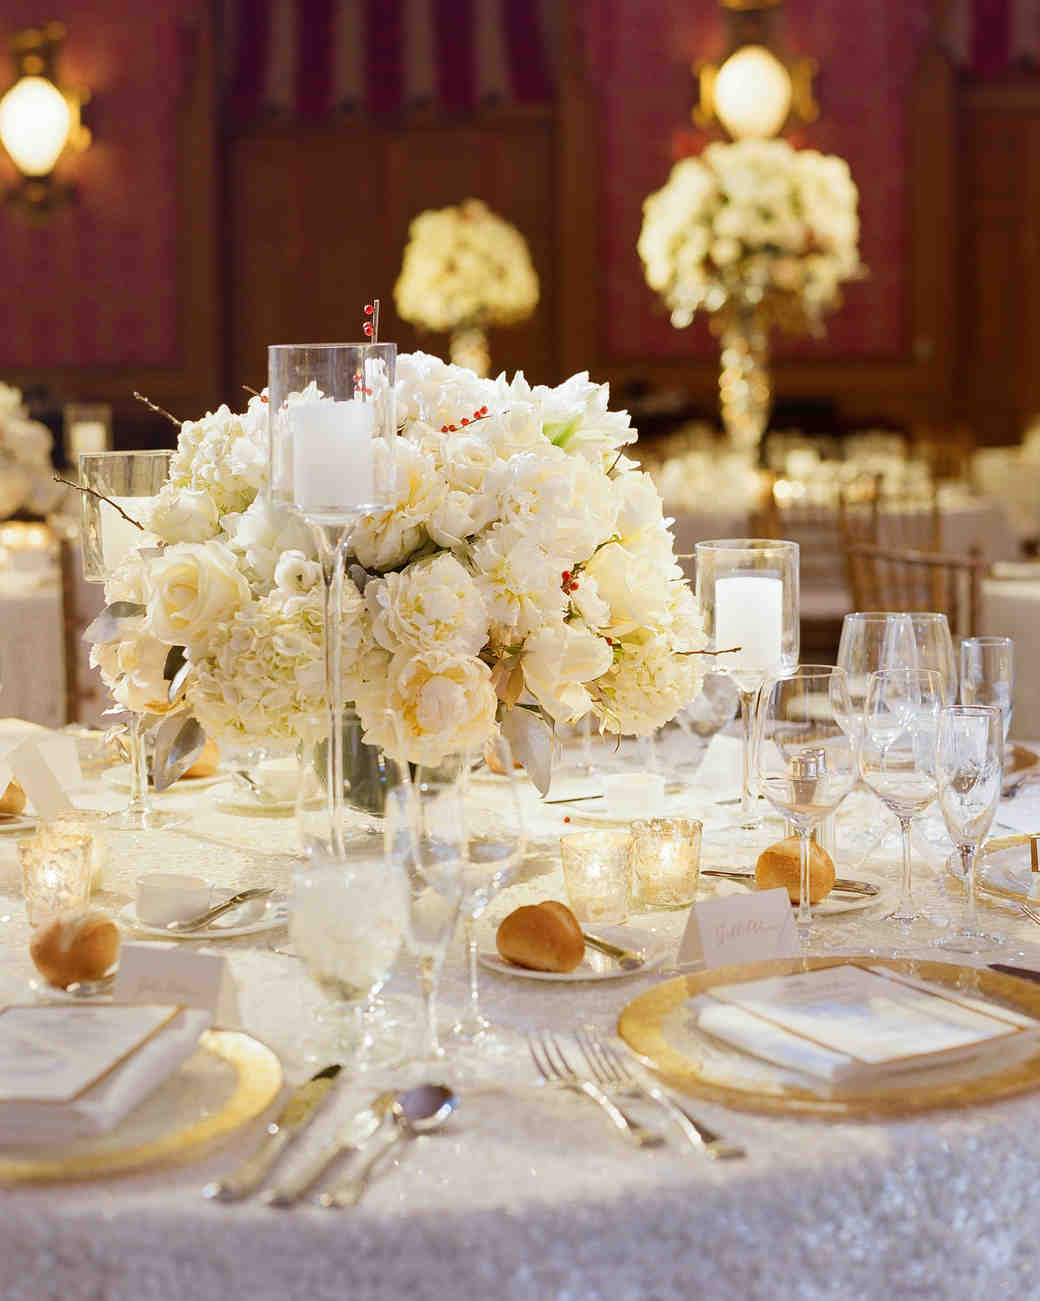 84 Candle Centerpieces That Will Light Up Your Reception  Martha Stewart Weddings